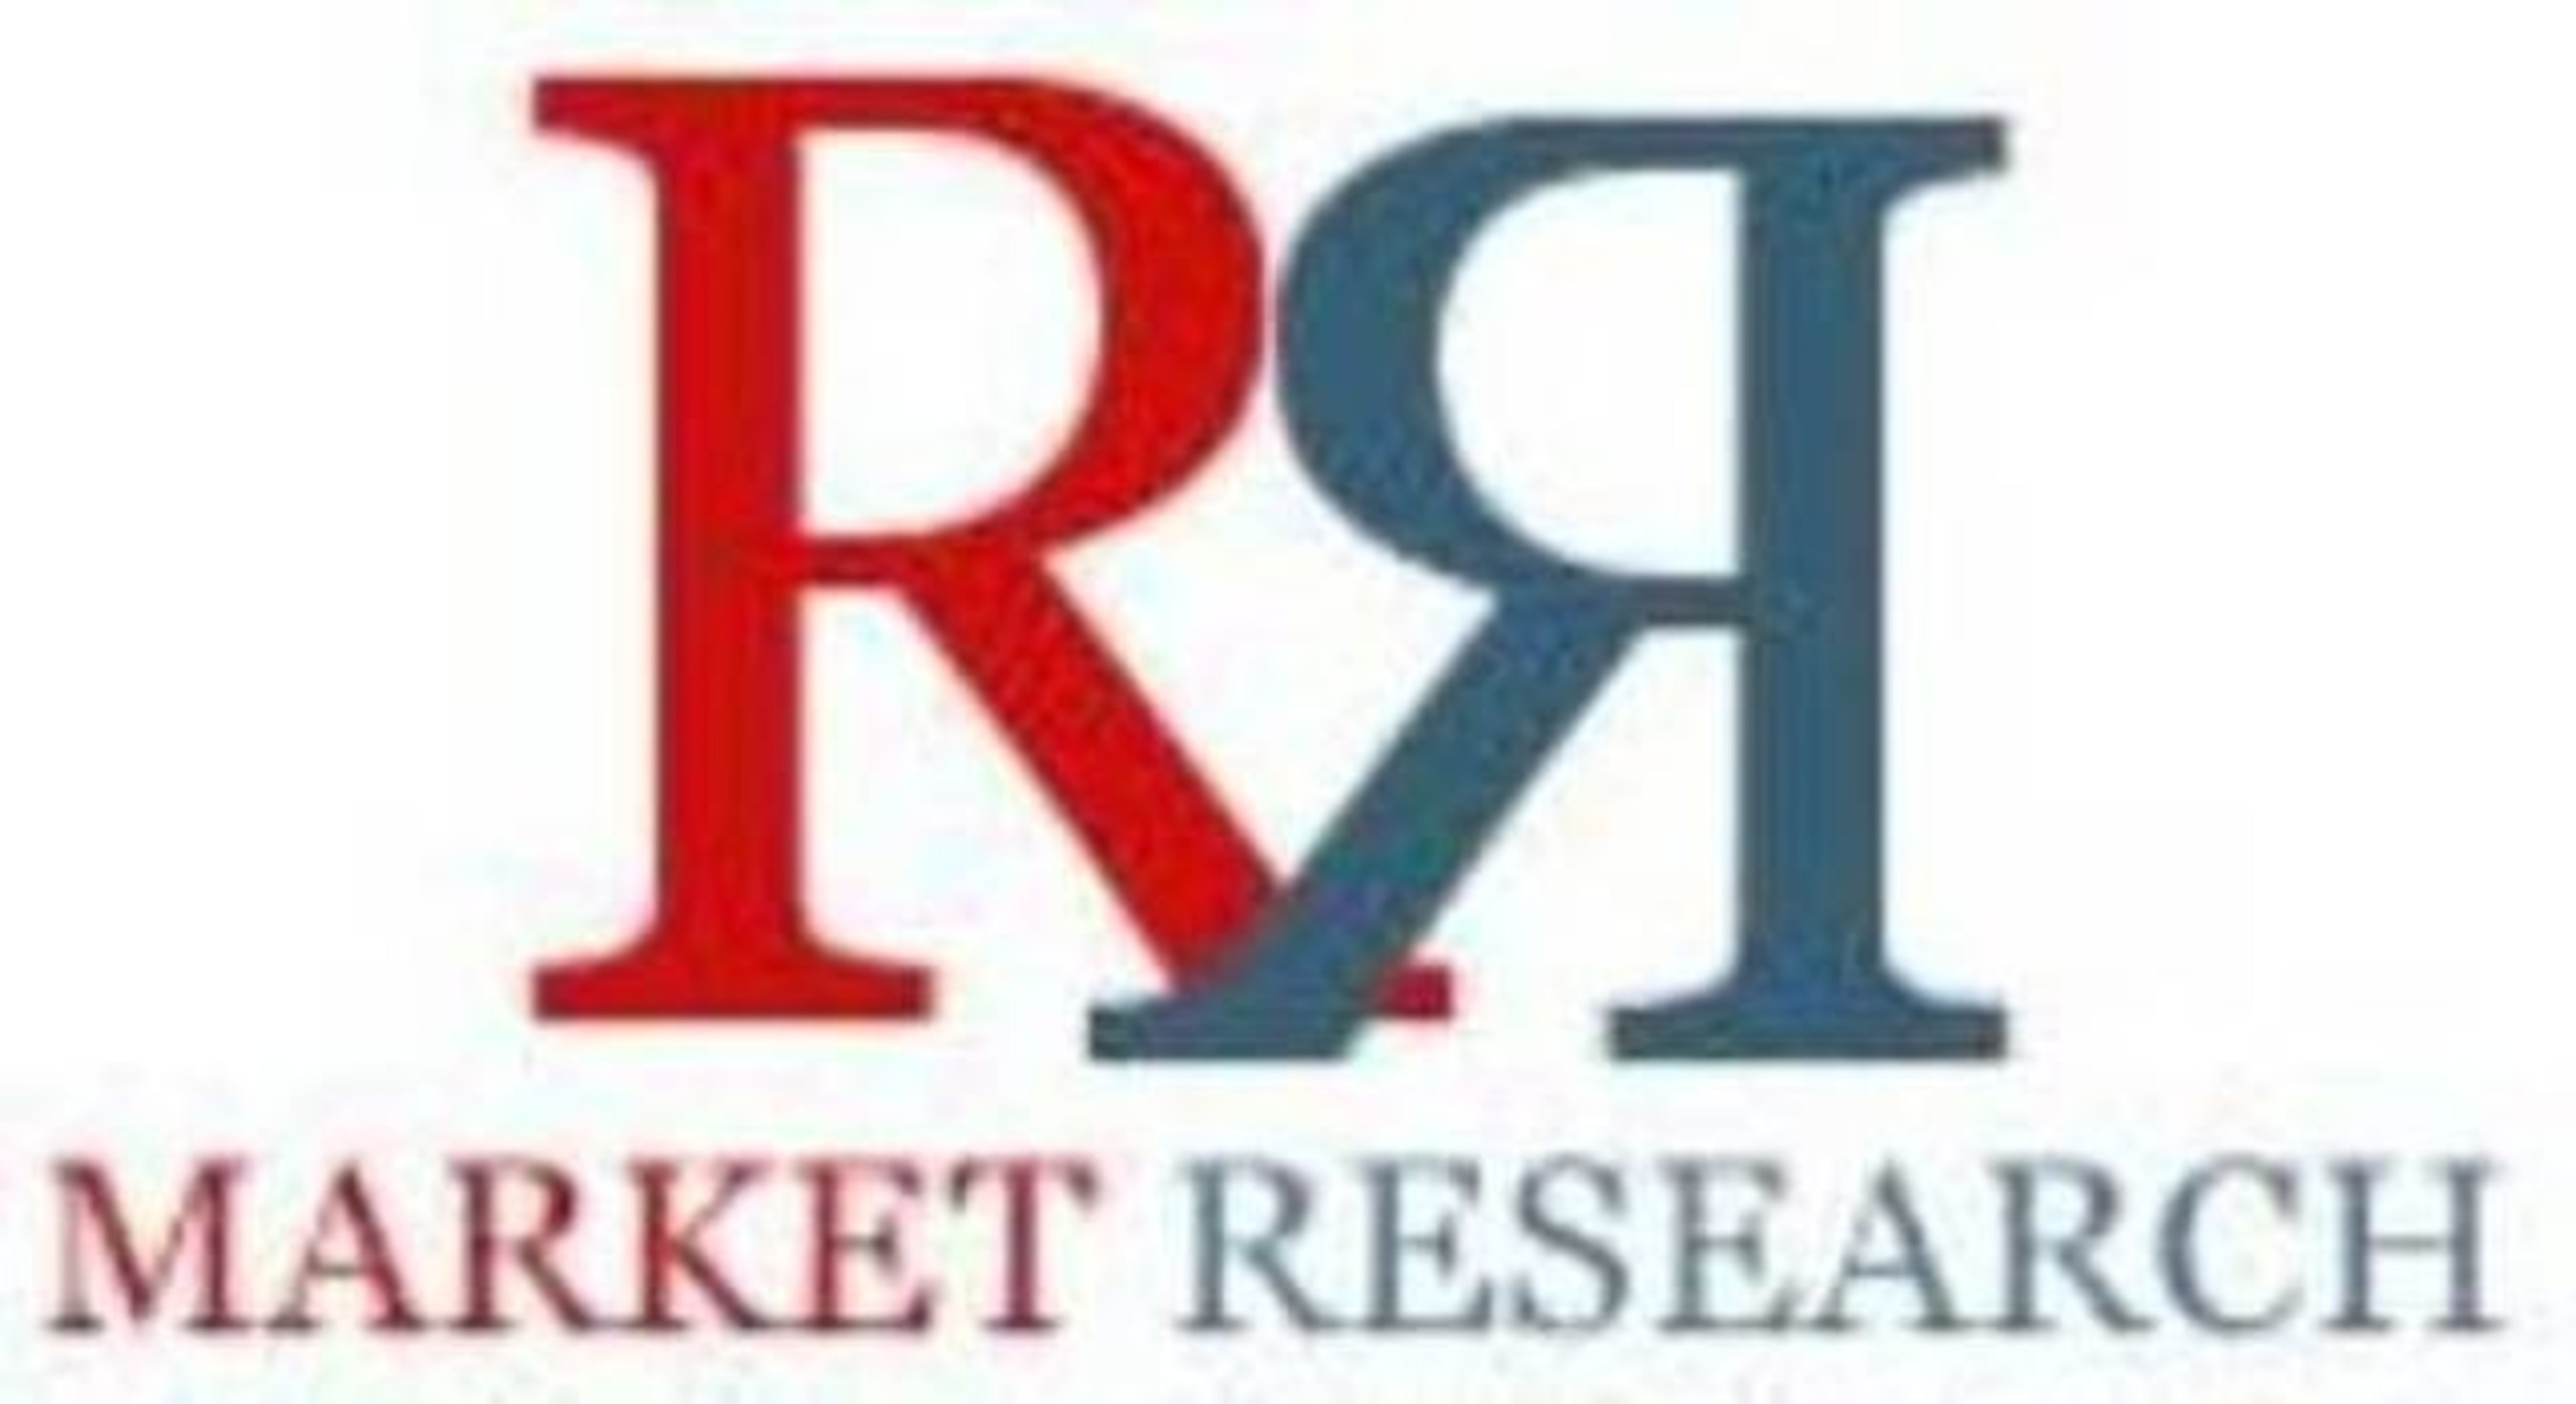 Terminal Antennas Market 2020 Forecasts for Global (US, Europe, Japan, China) Regions